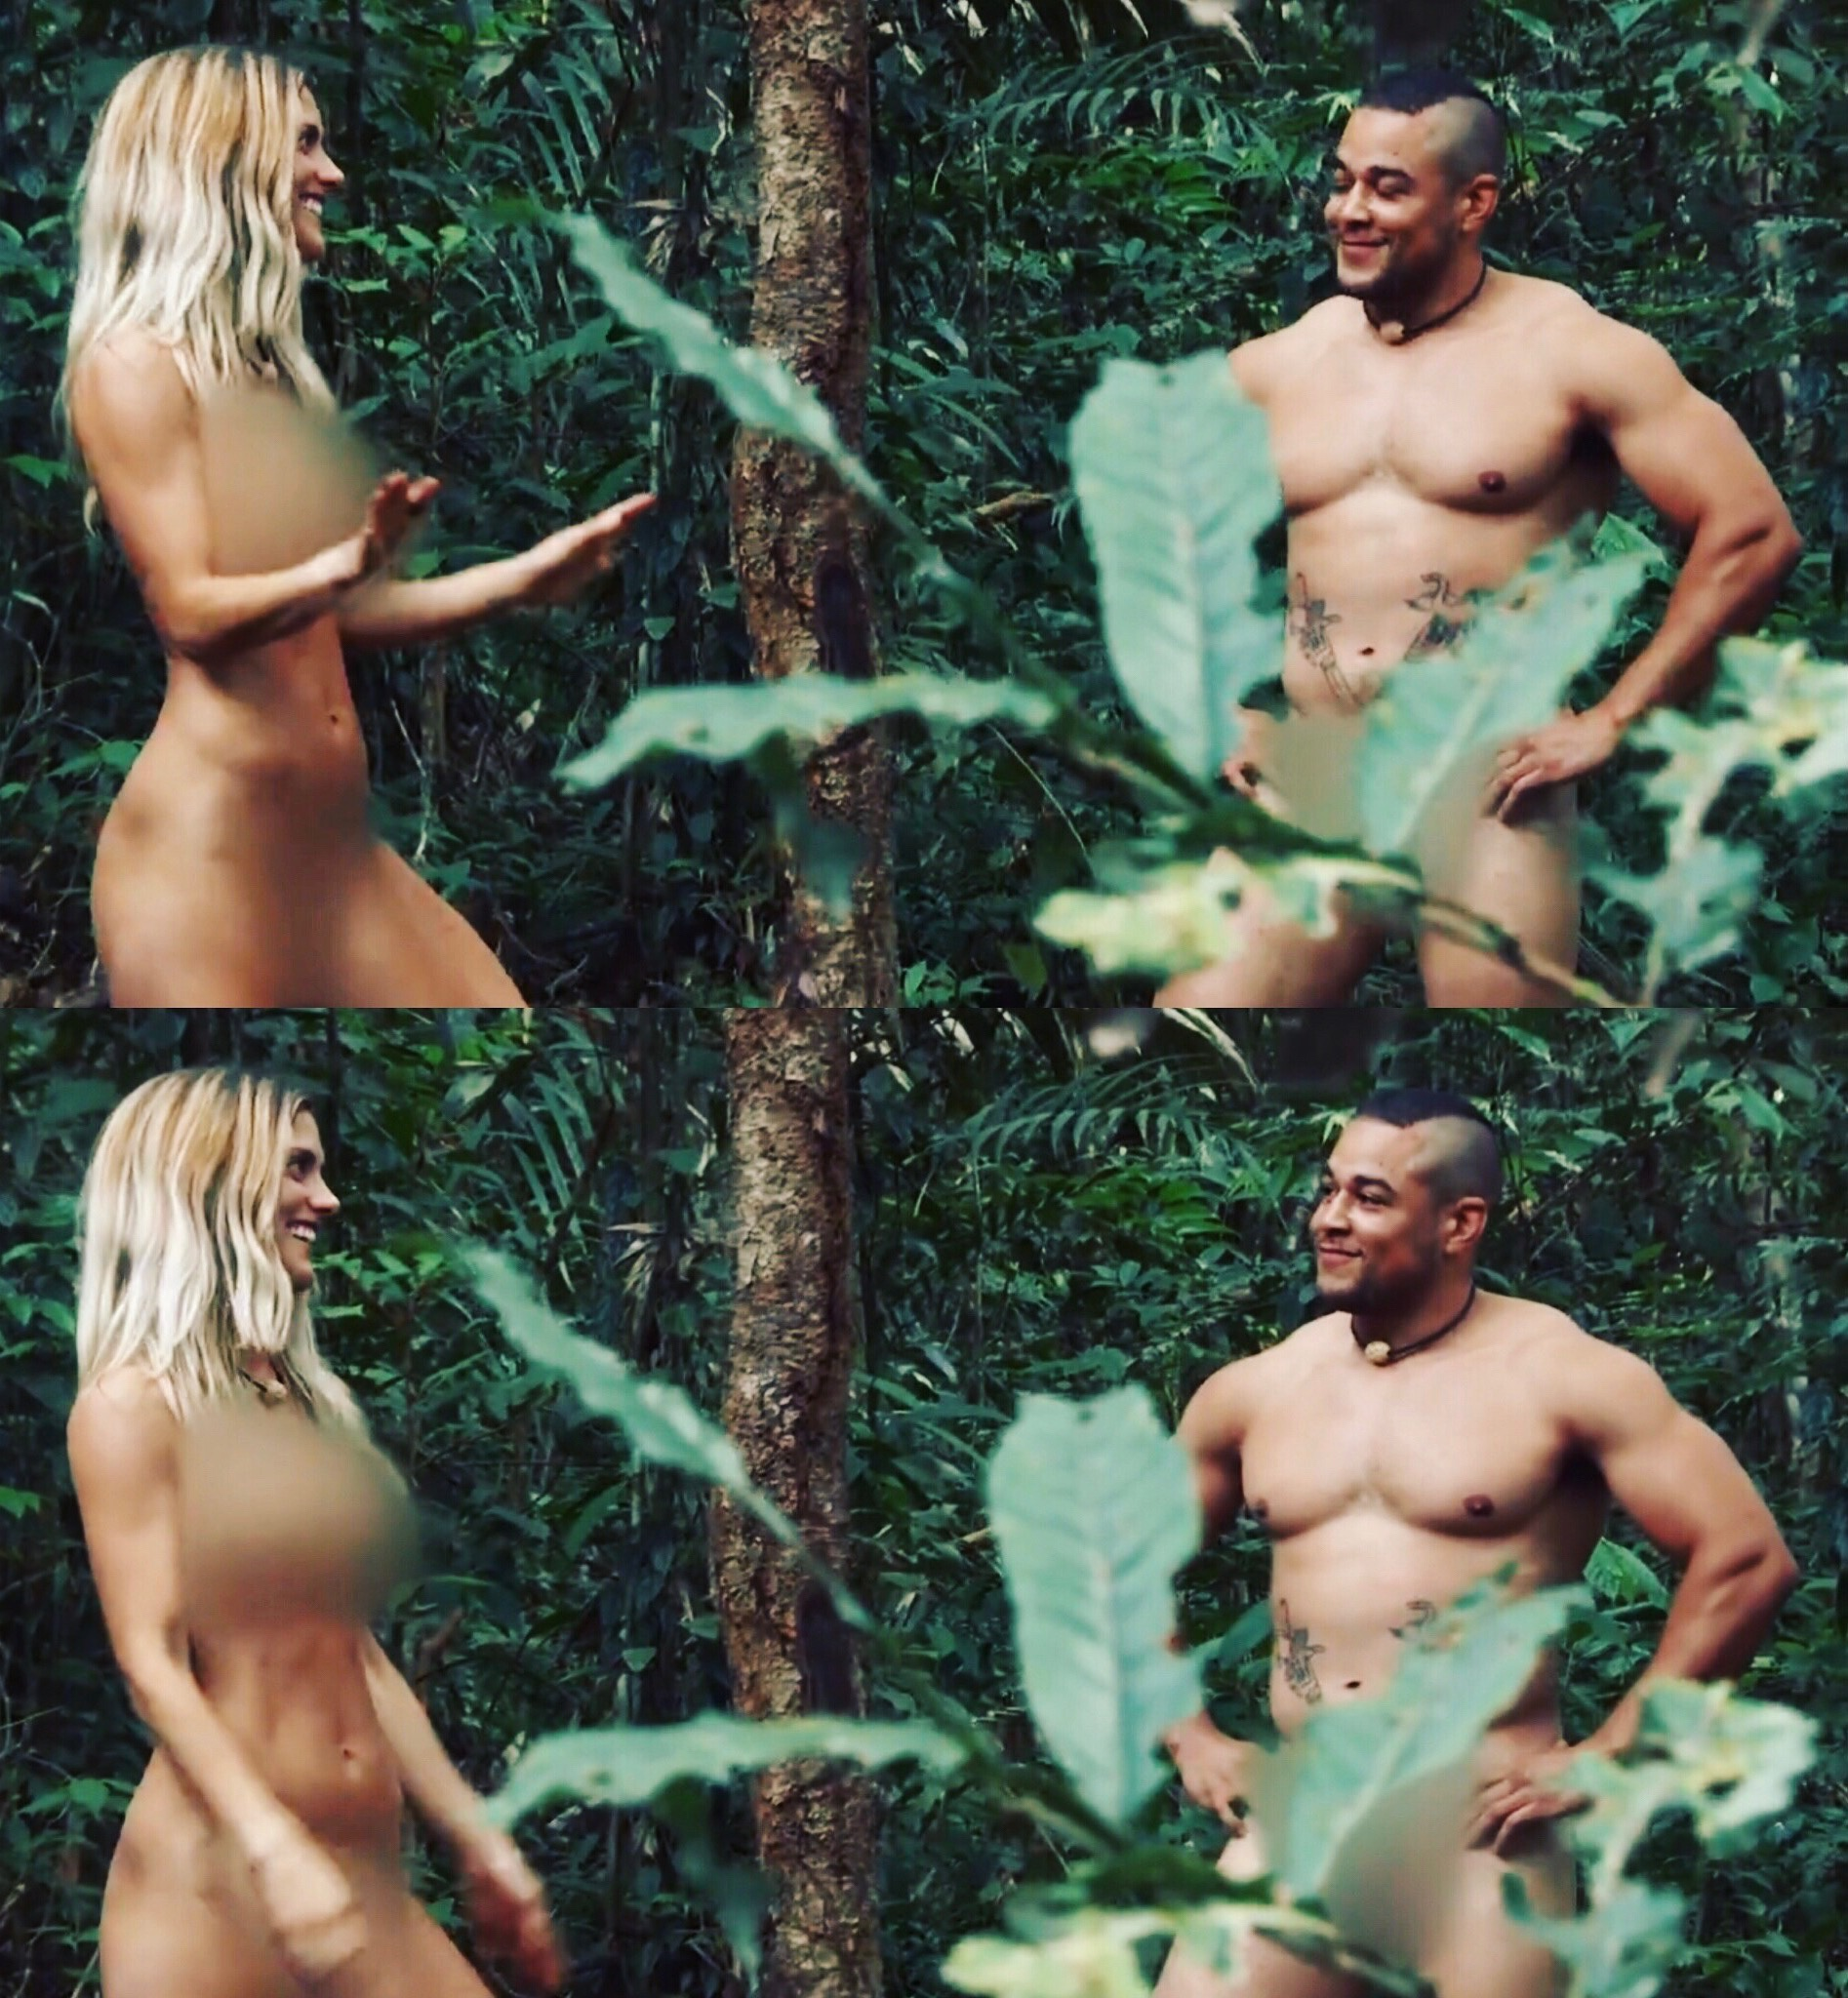 Discovery naked and afraid uncensored pics